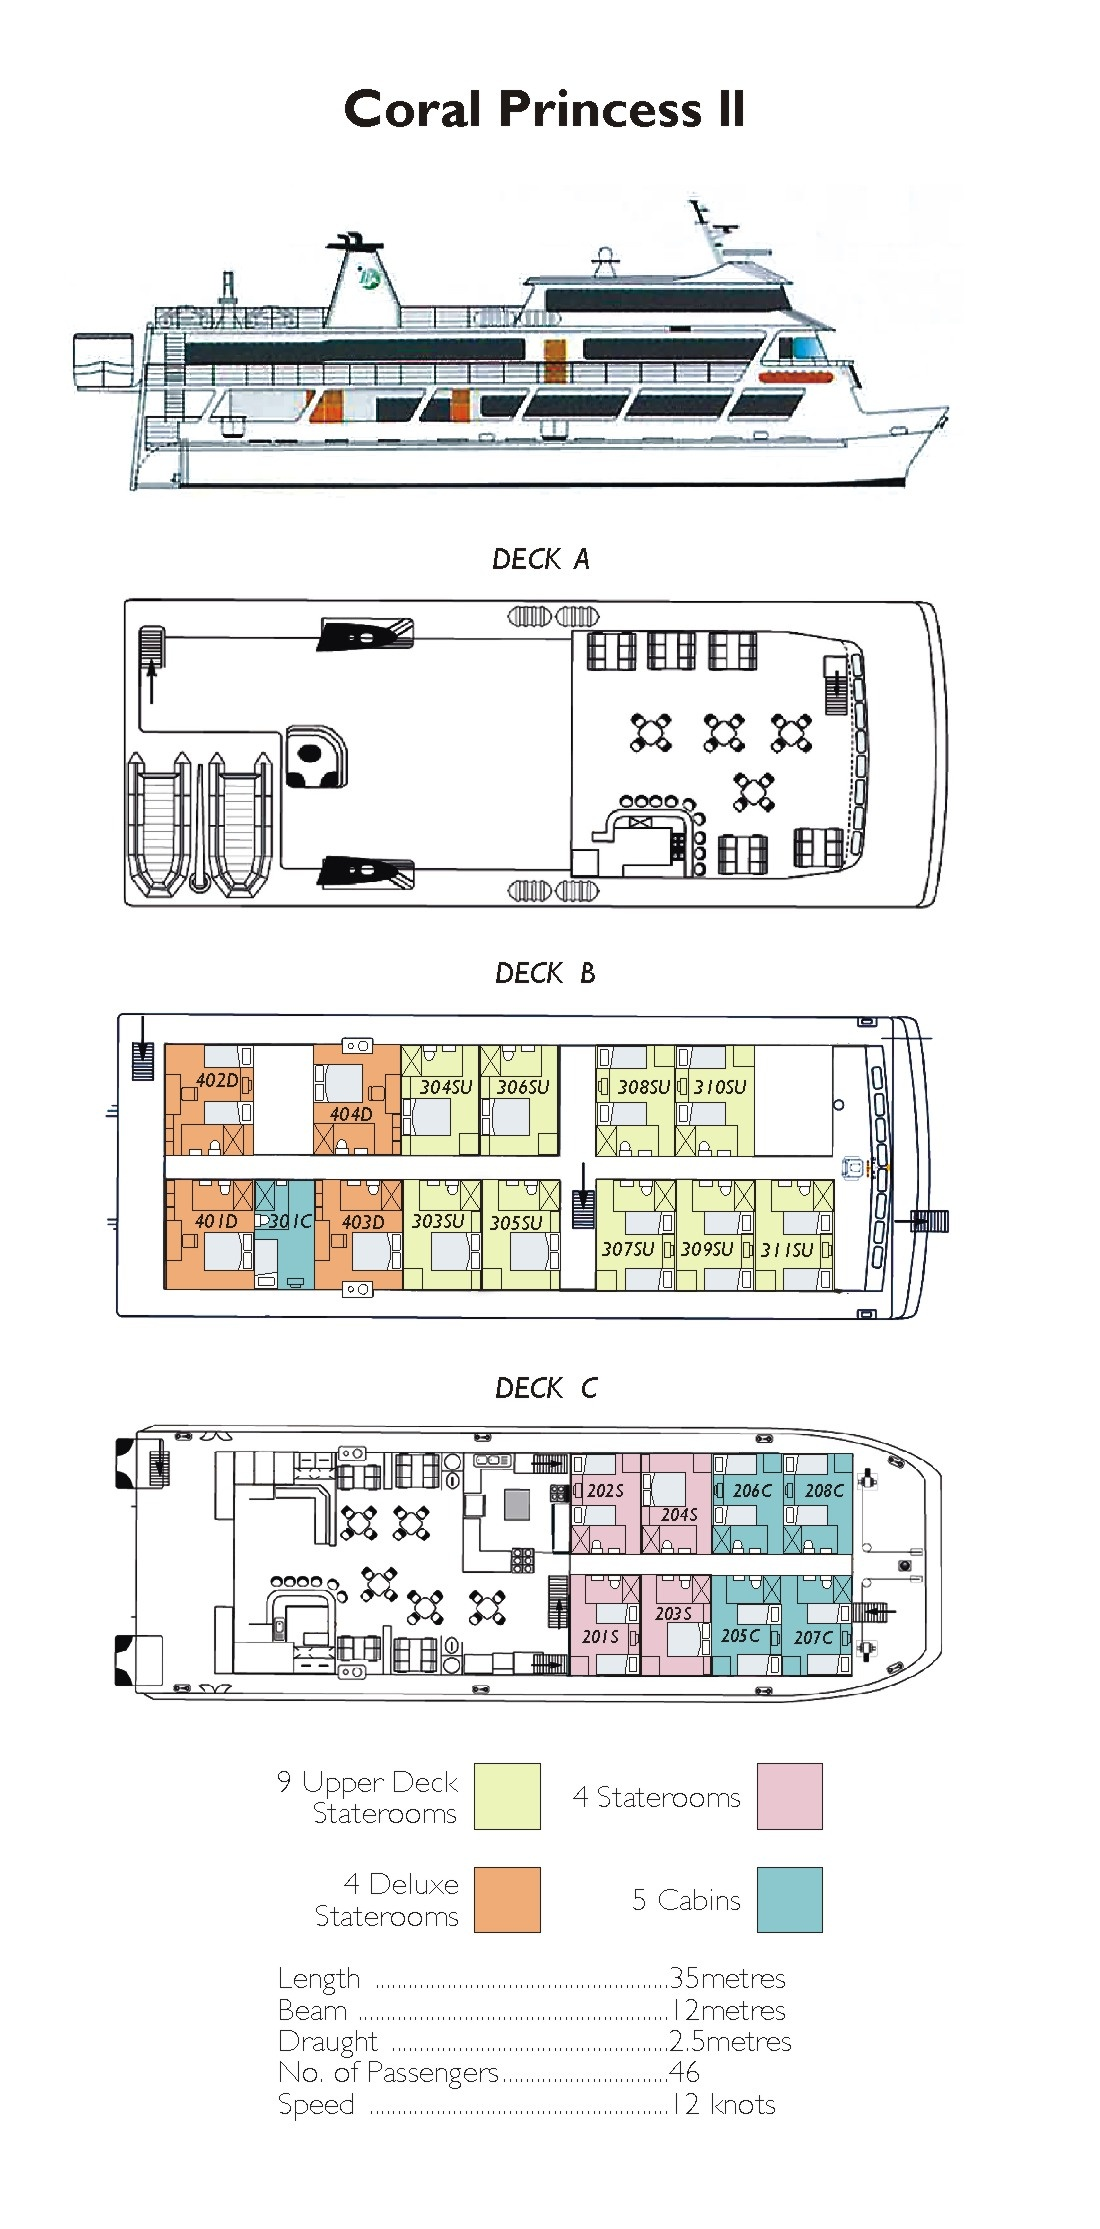 Cabin layout for Coral Expeditions II